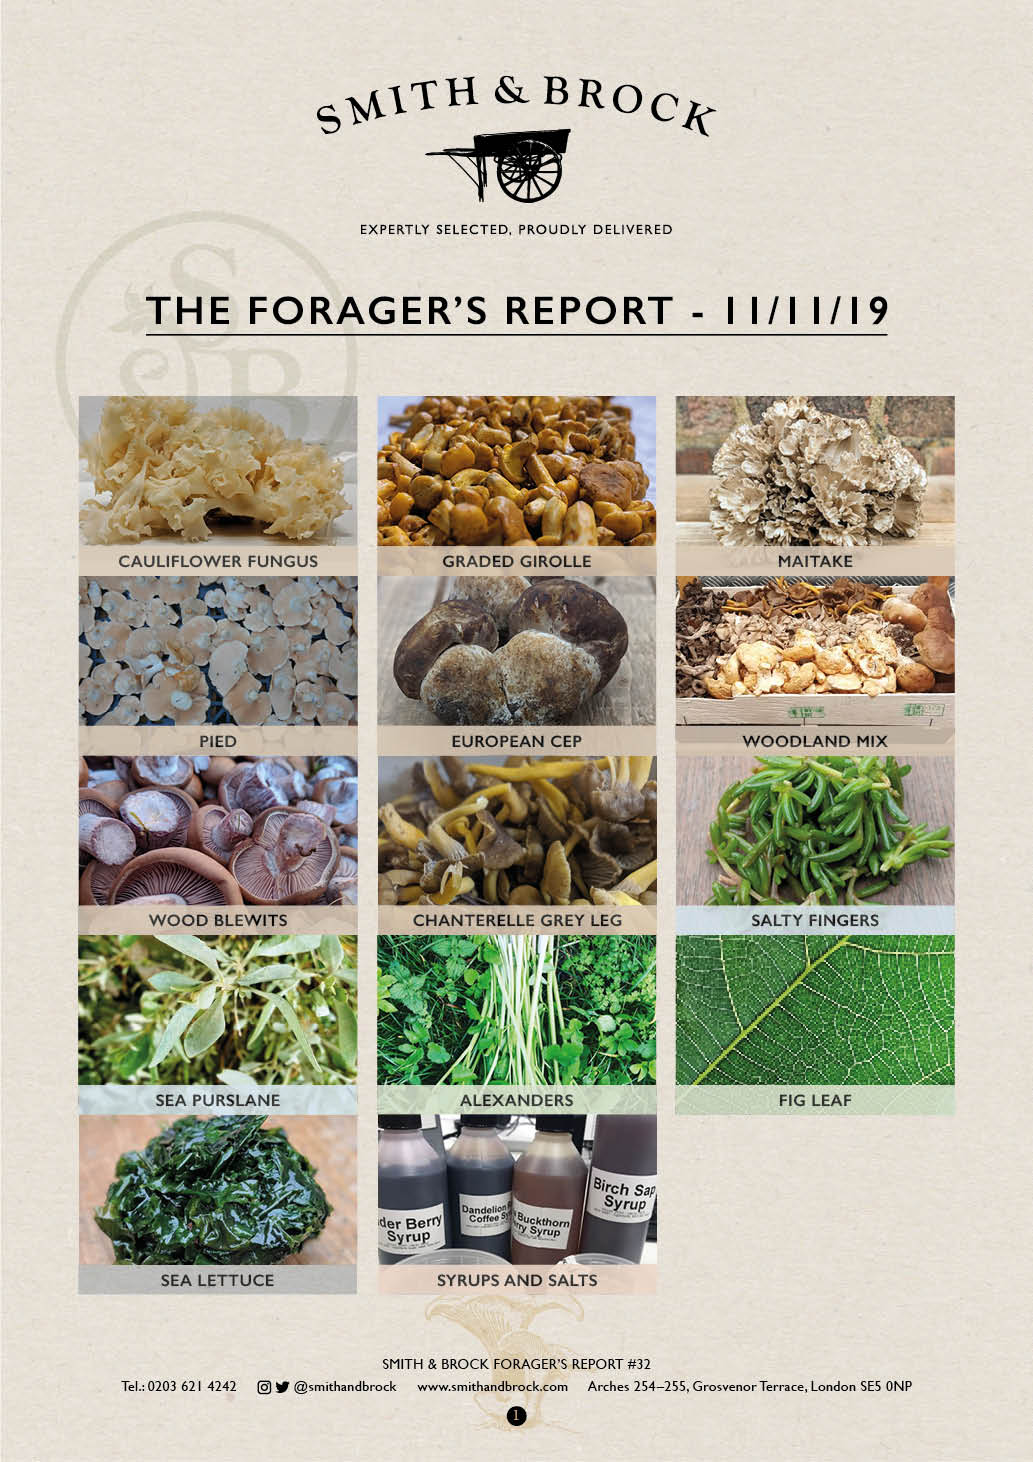 Smith&Brock Foraged Products Report 11 Nov 2019 32